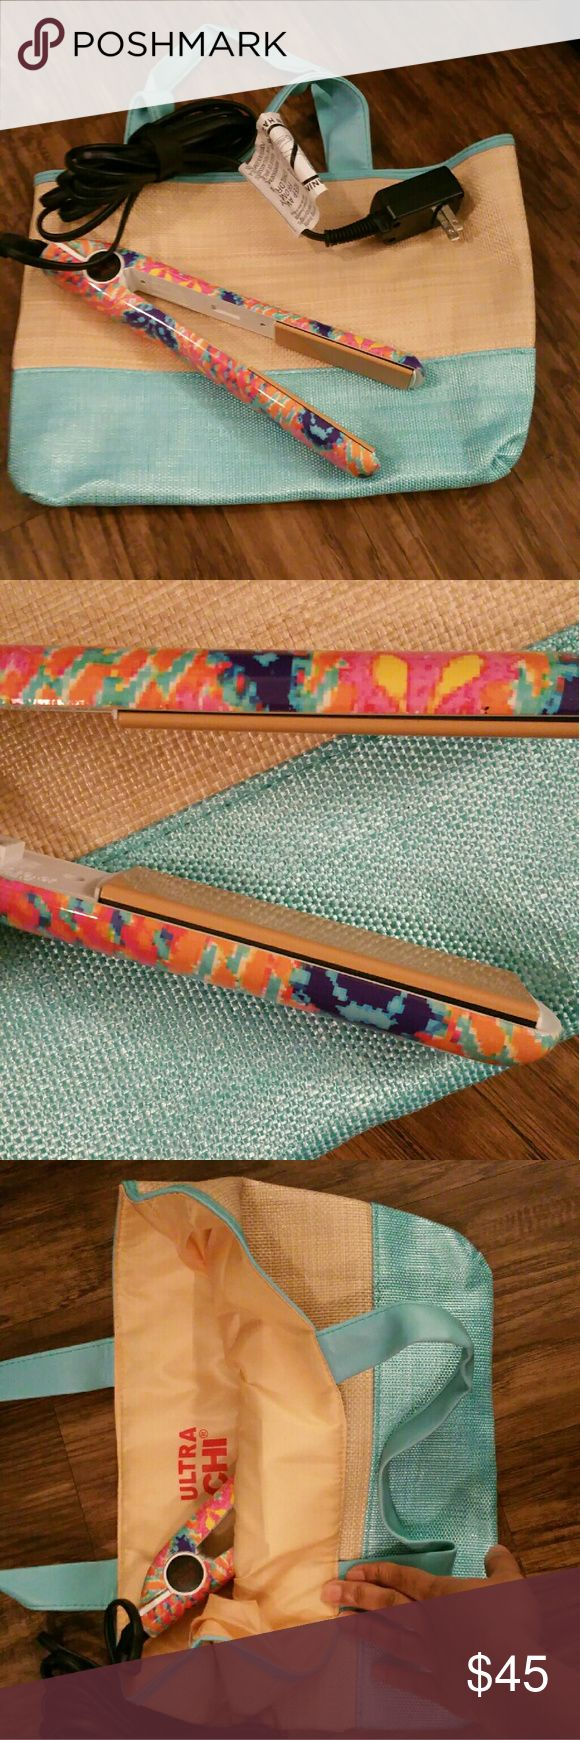 Coral Reef Ulta Chi Flat Iron One inch ceramic tourmaline flat iron by Ultra Chi. Used a few times. Heats up to 392? F. Coordinating tote included. Ultra Chi Other